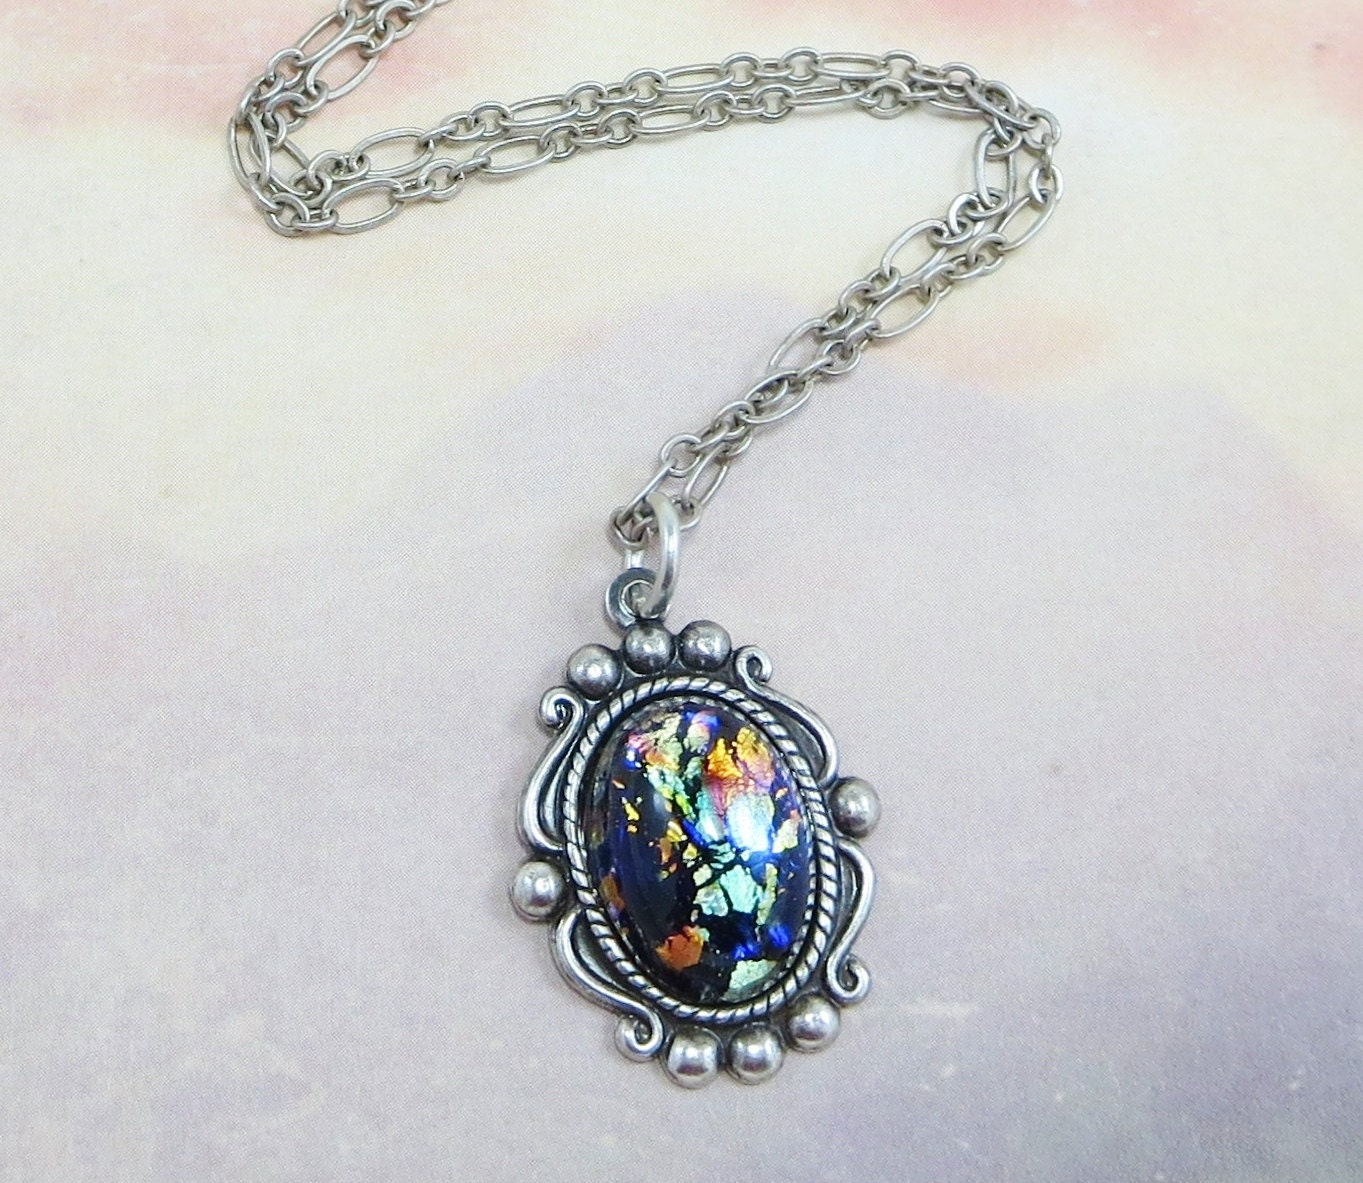 official site from in blackopalnecklace necklace opals fine necklaces government black product opal pendent wholesale heritage jewelry australia